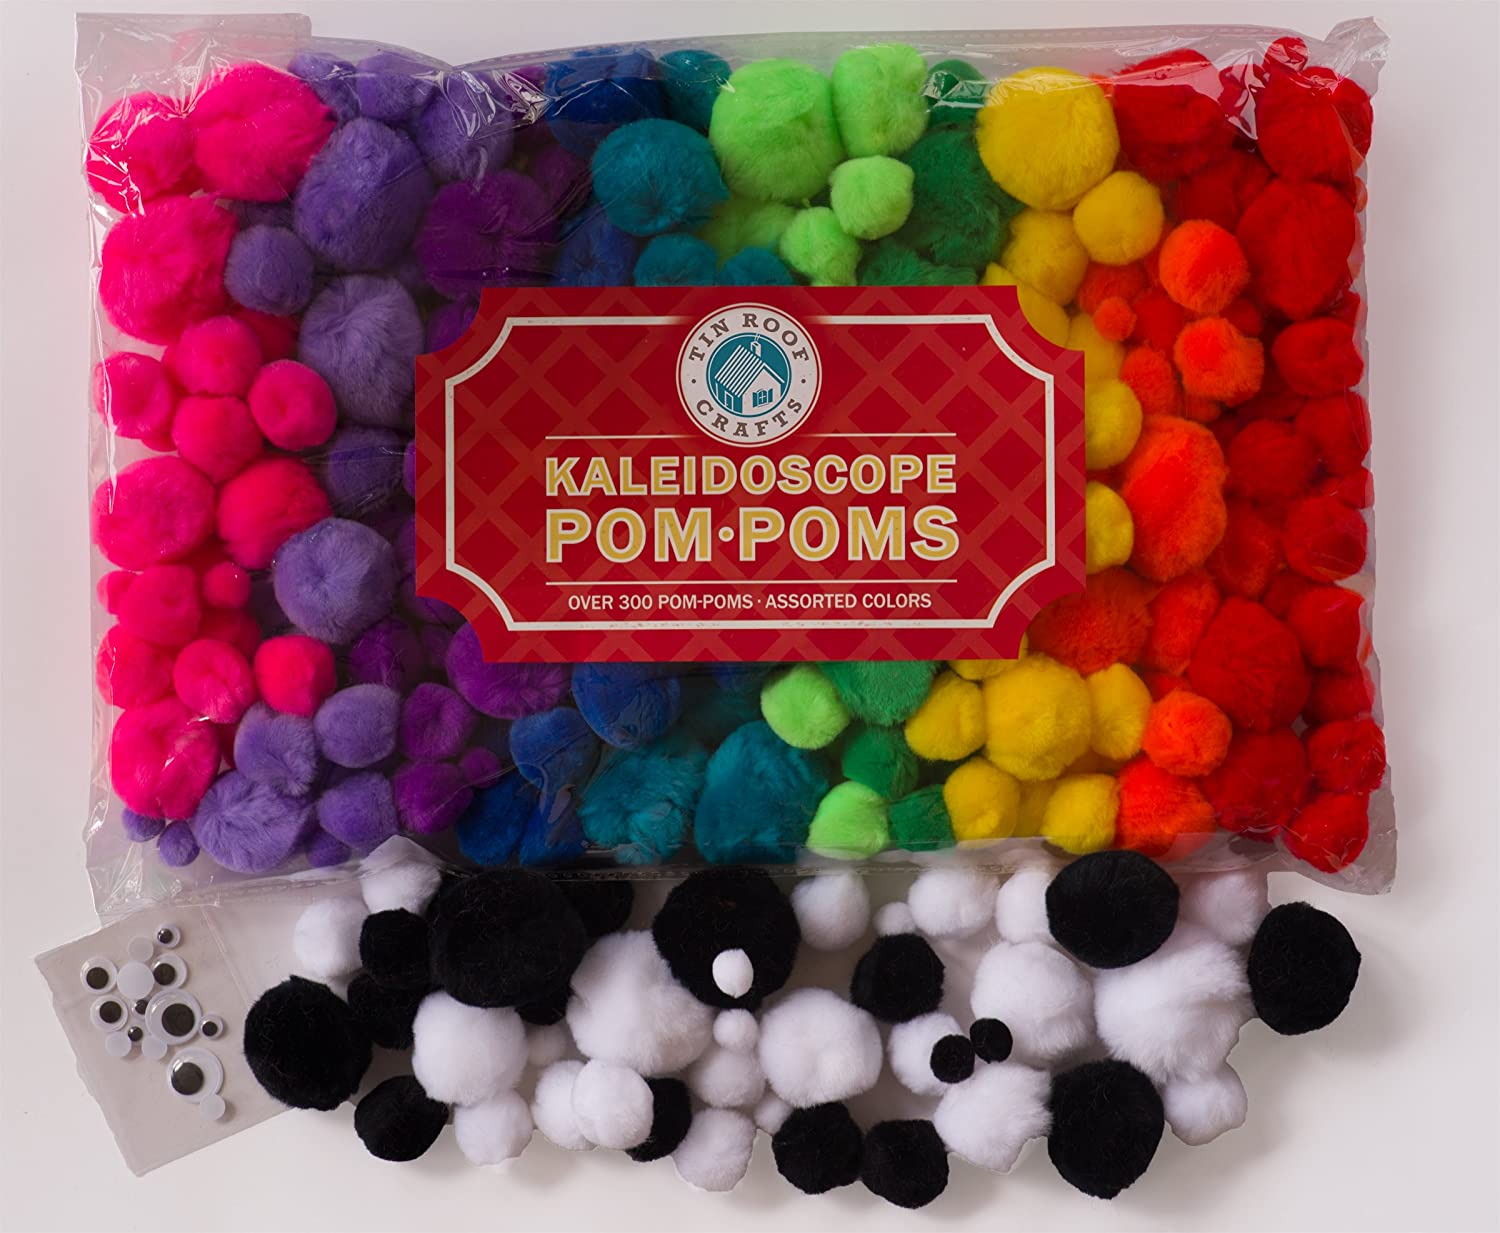 4 Different Sizes Bonus Googly Eye Package 324 Pompoms Tin Roof Crafts Deluxe Pom Poms in Hot Kaleidoscope Colors for Crafts and DIY Hobby Supplies Large Bag